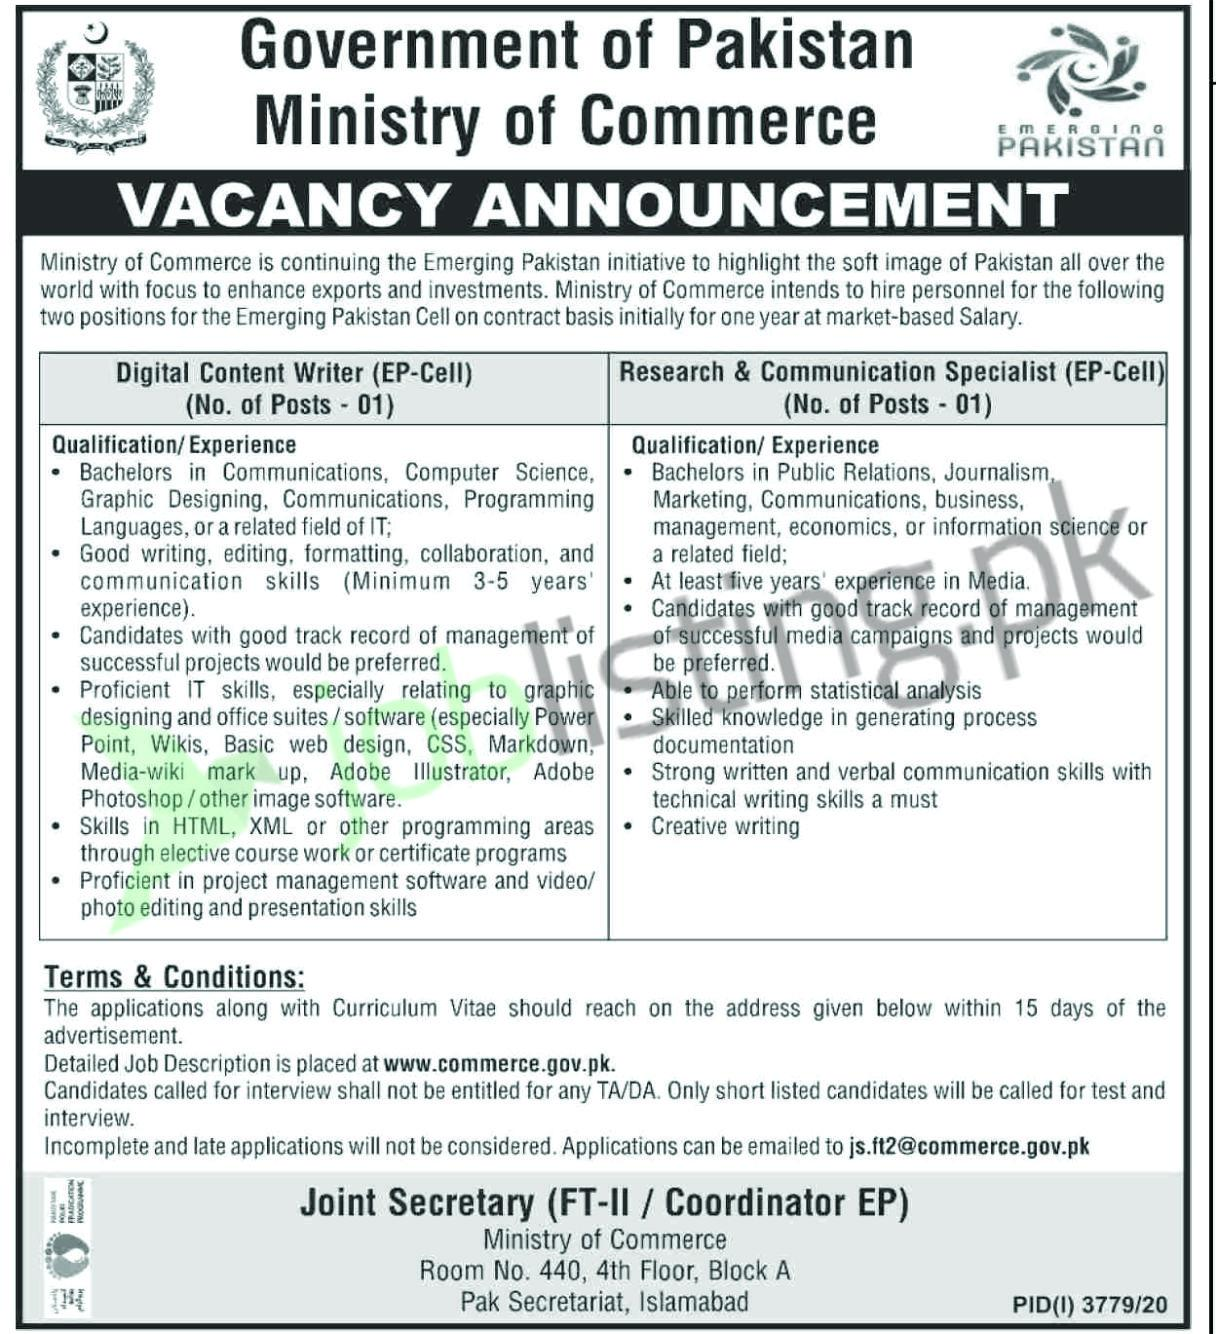 Digital Content Writer jobs in Islamabad at Ministry of Commerce